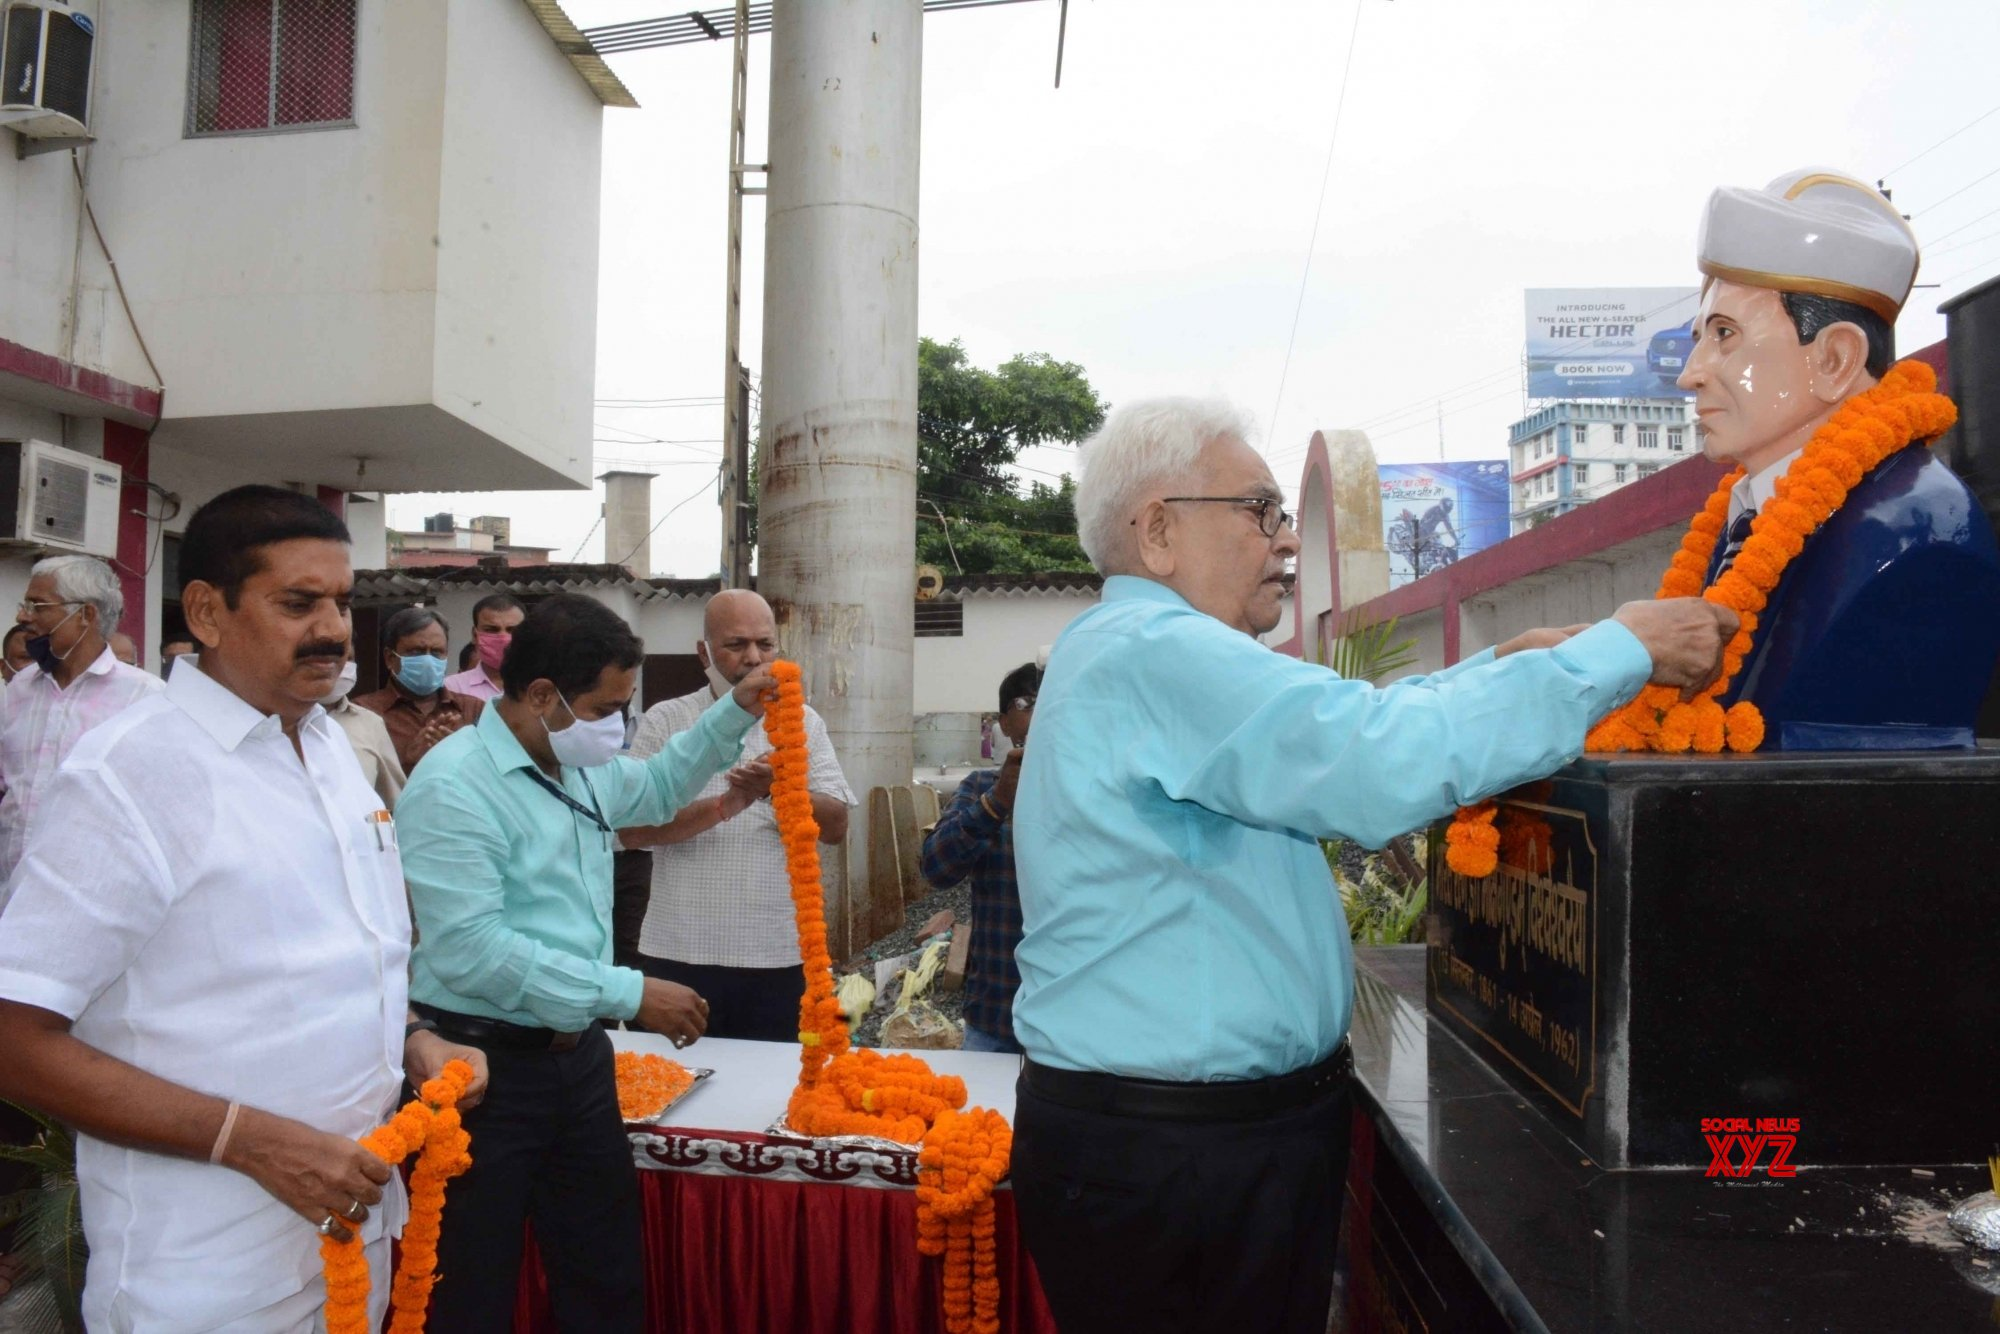 Patna: Tributes paid to Mokshagundam Visvesvaraya on Engineer's Day #Gallery